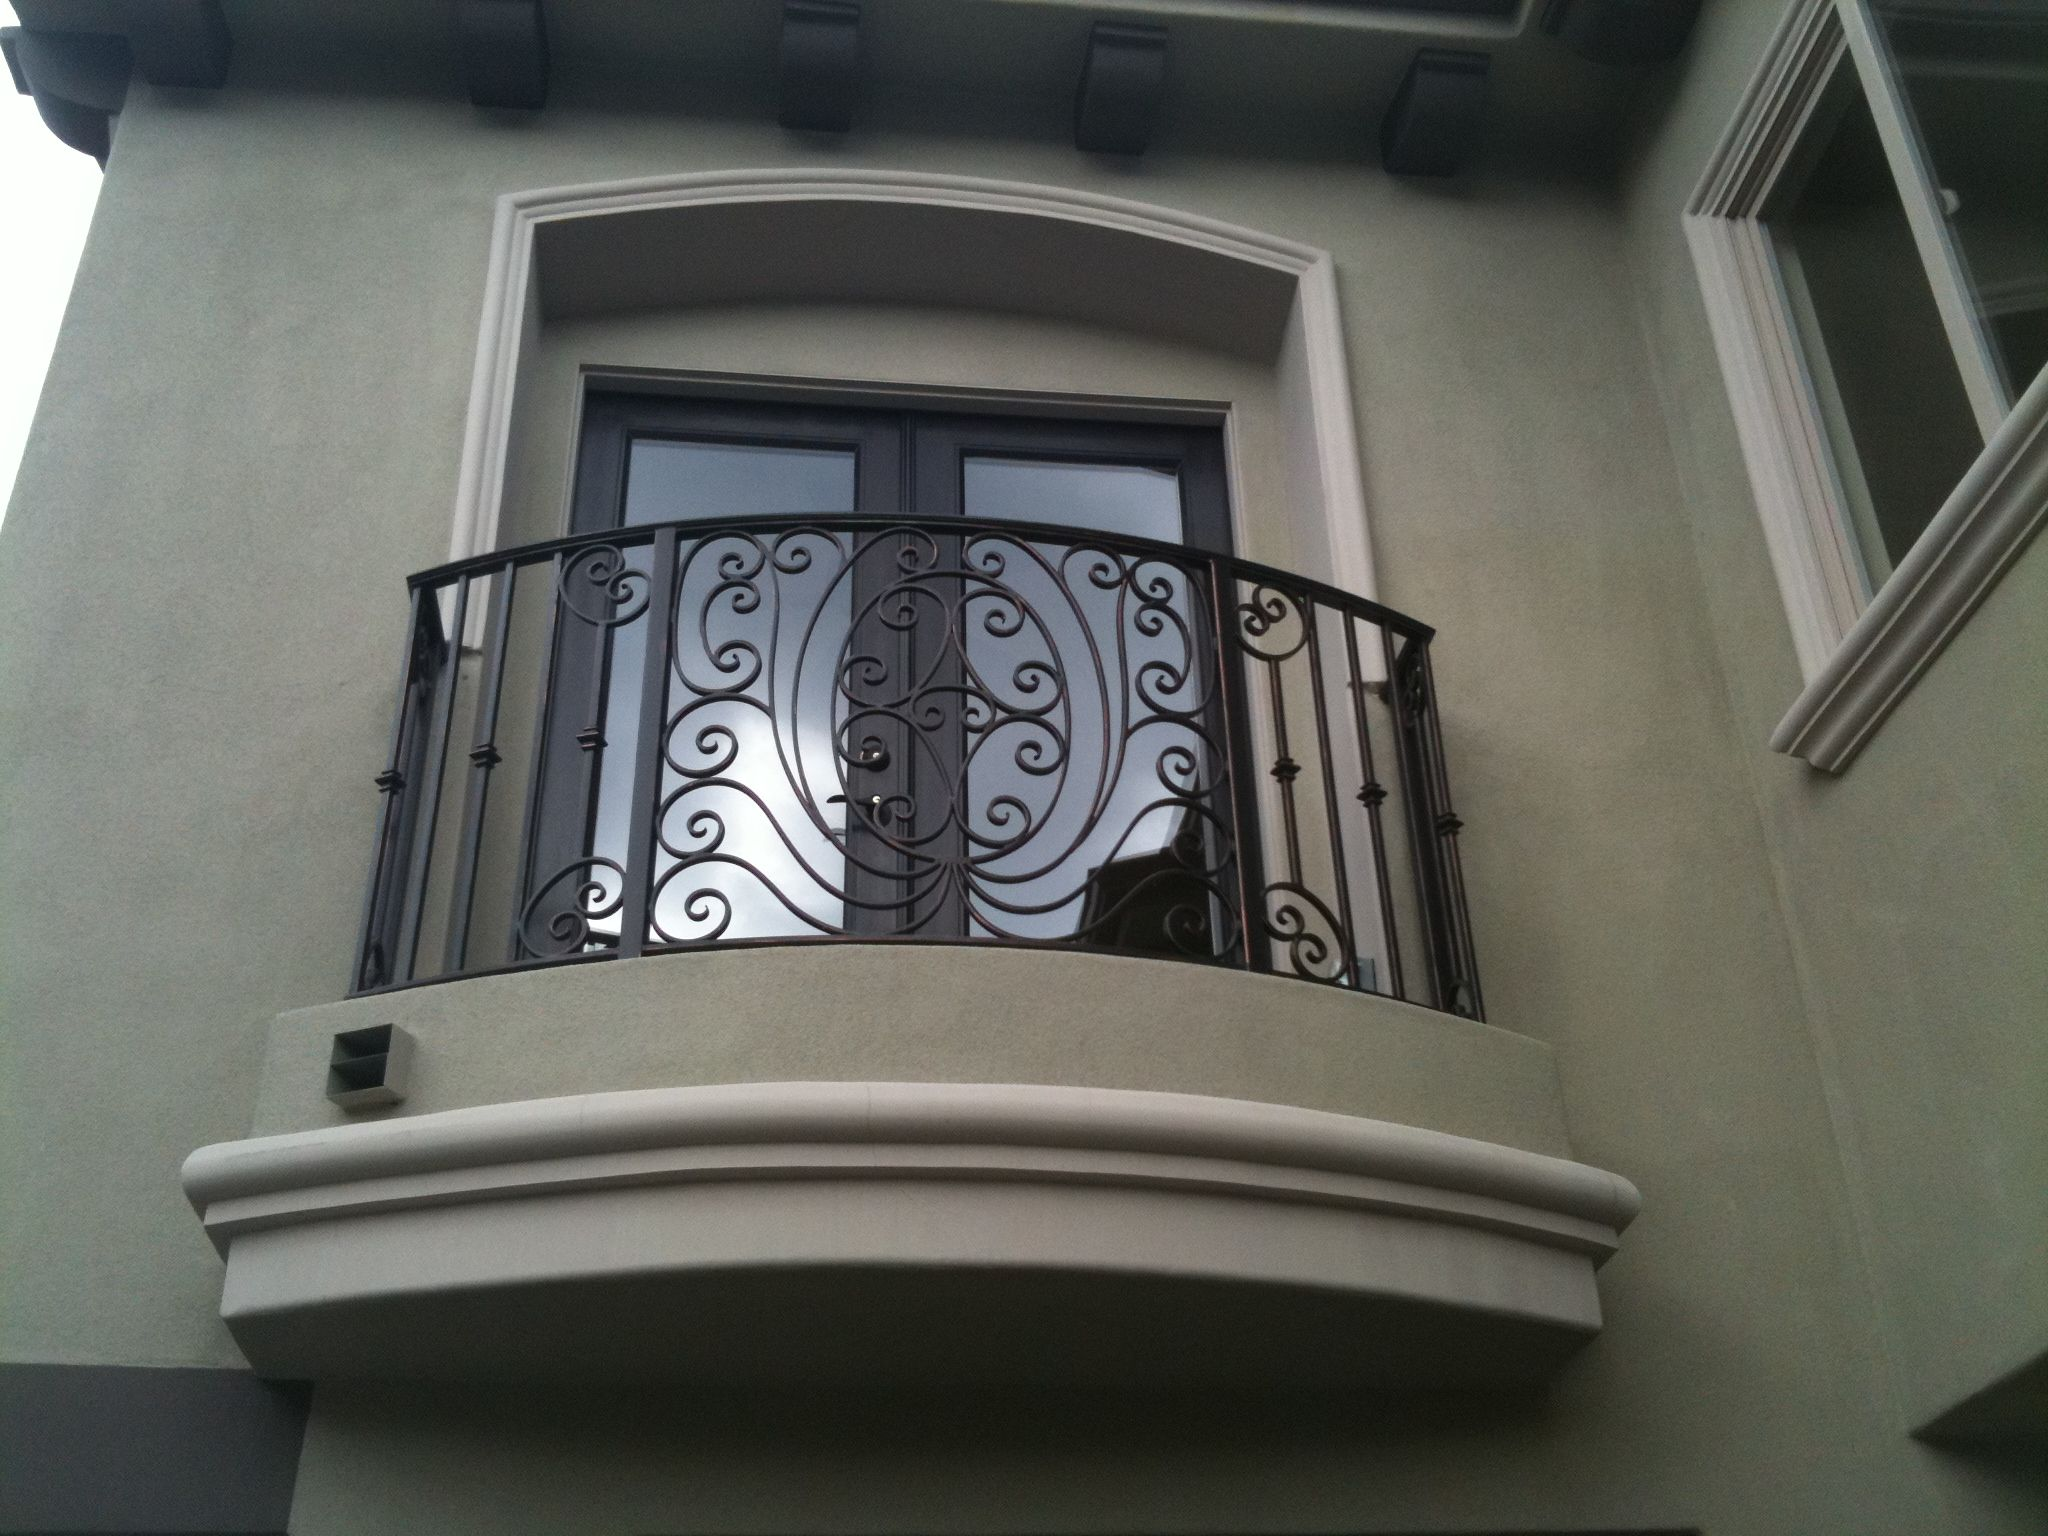 Iron Railings Balconies From Cantera Doors Are Designed With One Sole Purpose To Turn Your Stairway Or Balcony Into A Stunning Work Of Art